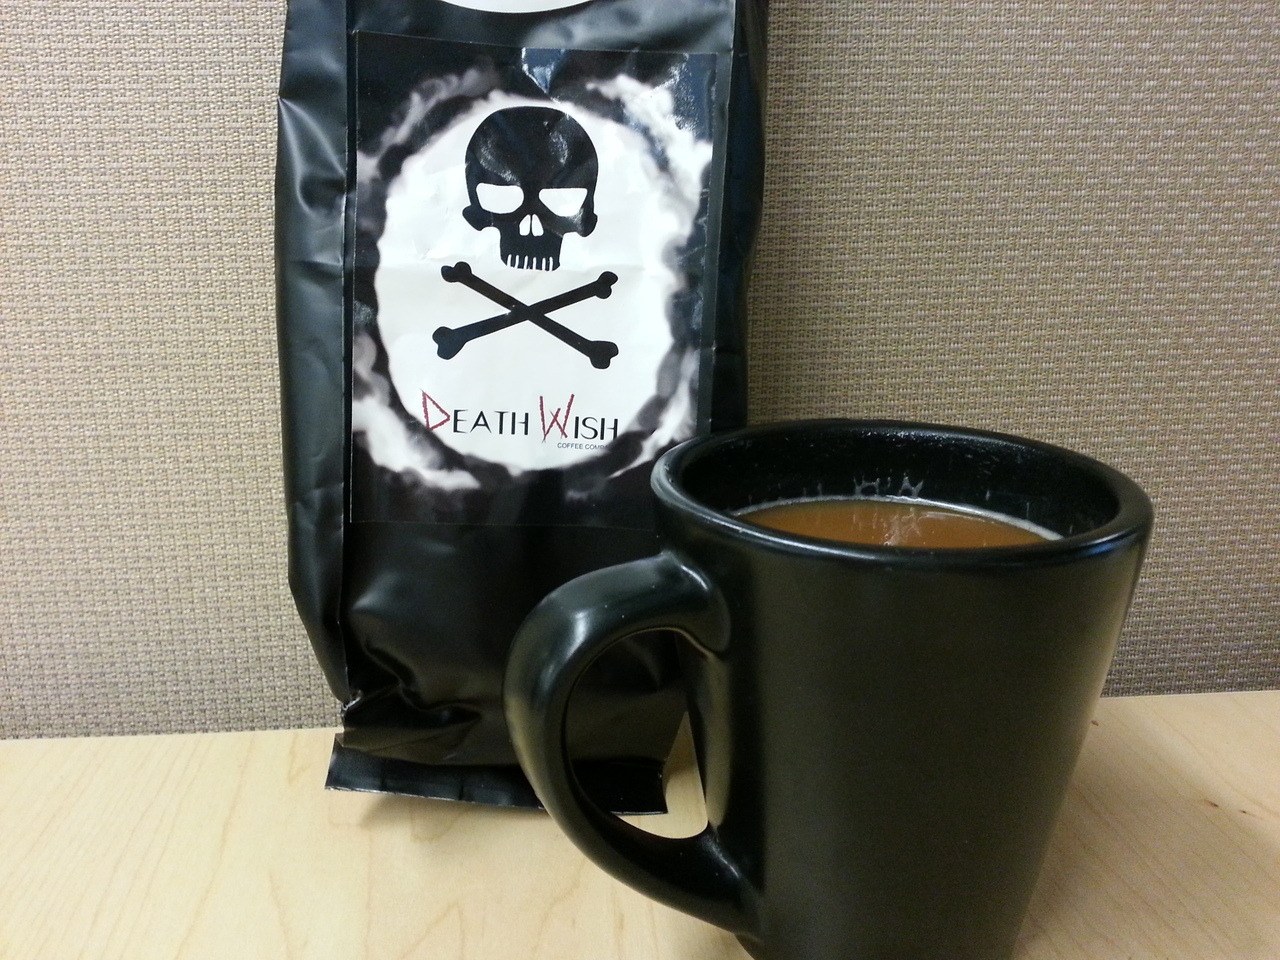 My review of Death Wish Coffee, the world's strongest coffee, with 200% more caffeine than anything else you've ever consumed It was alright, I guess.